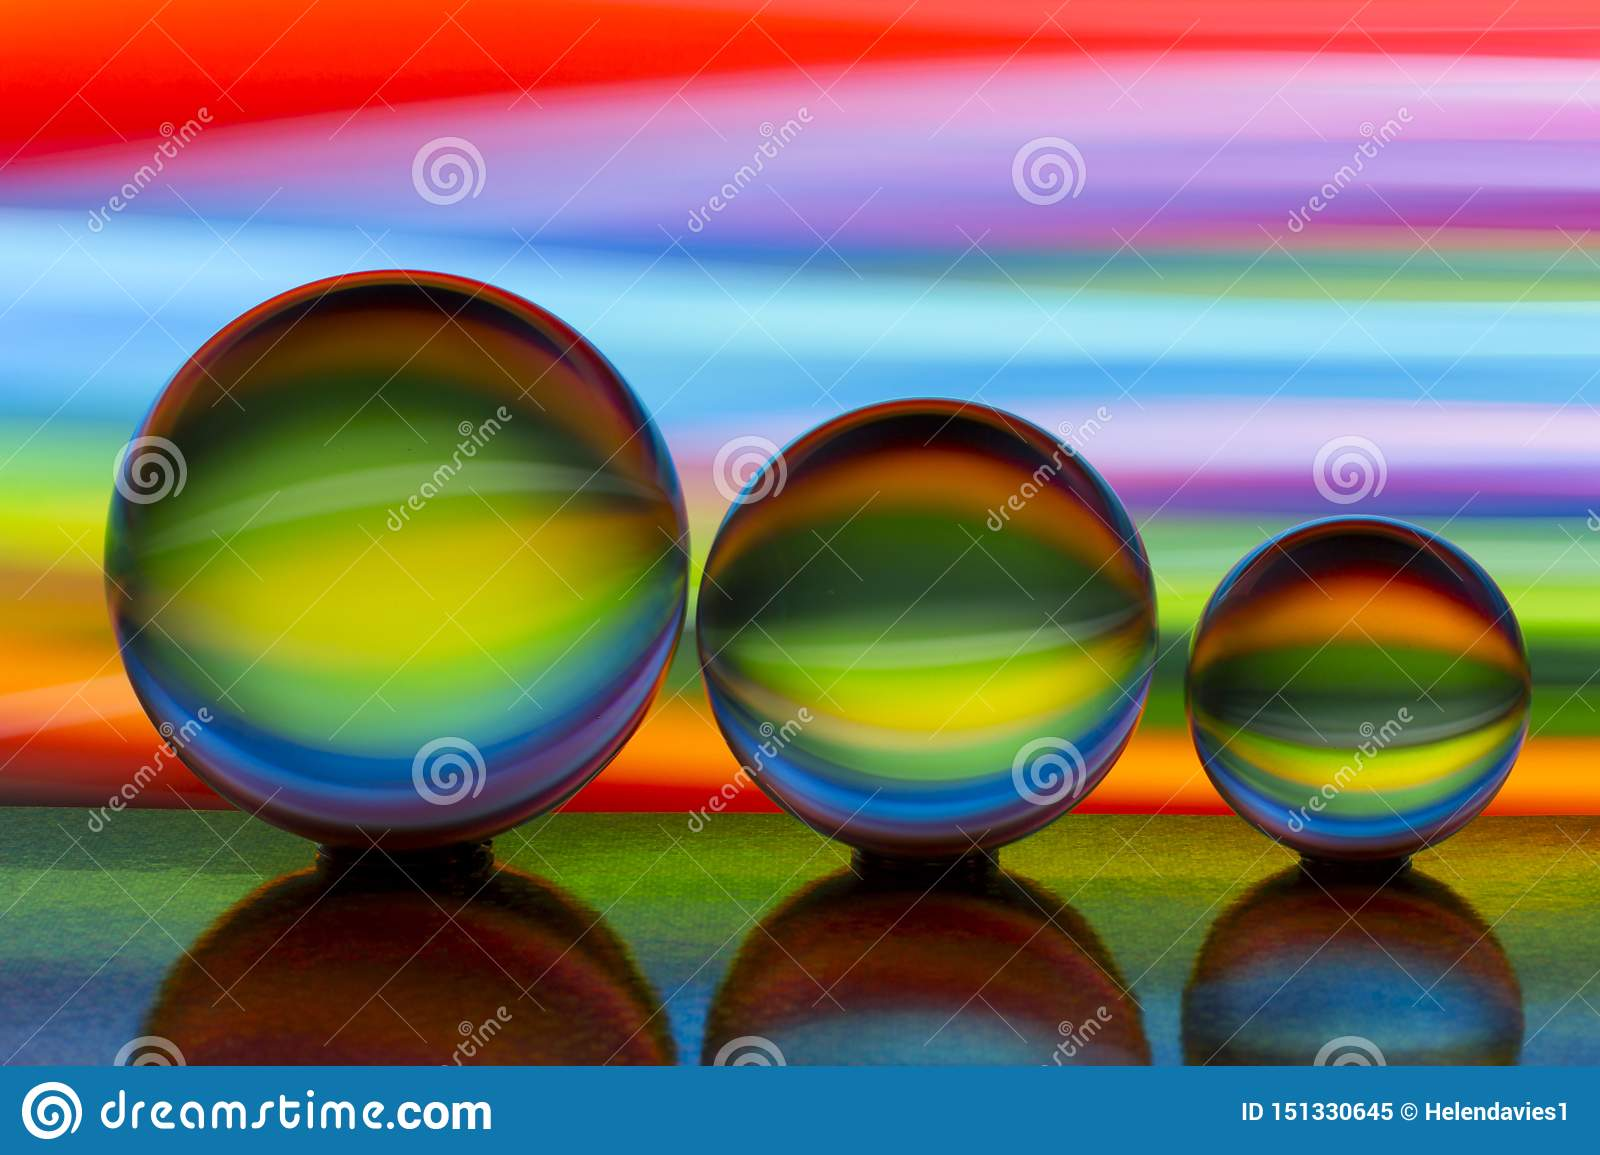 Three glass crystal balls in a row with a rainbow of colorful light painting behind them